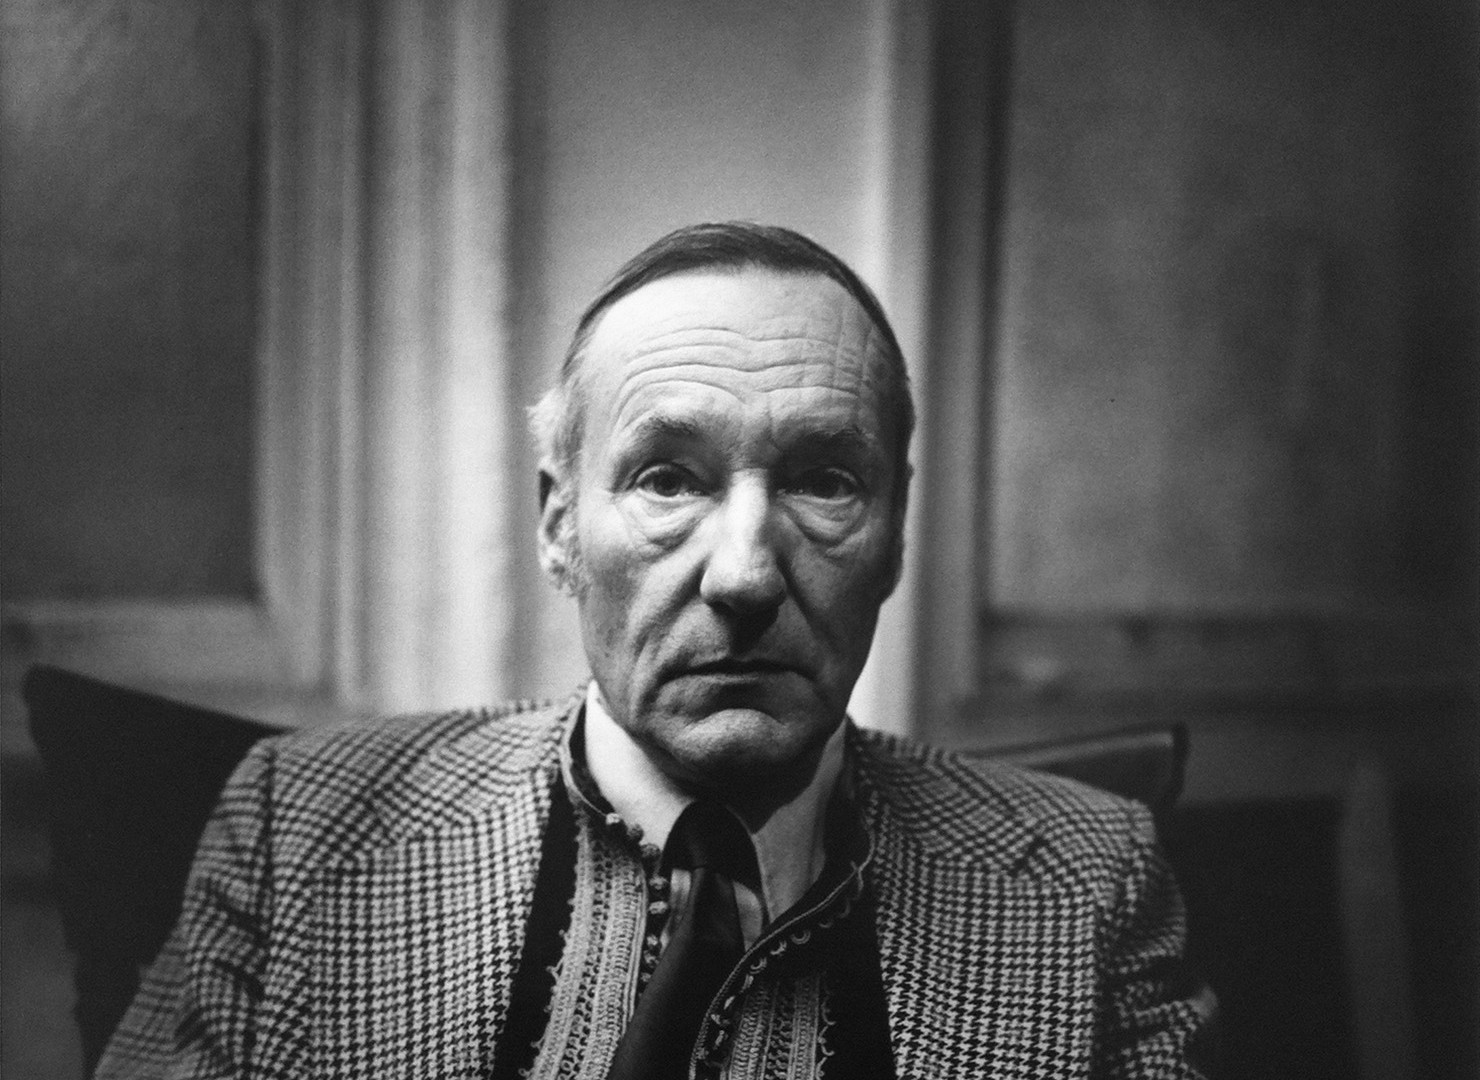 Peter Hujar, William Burroughs (II), 1975